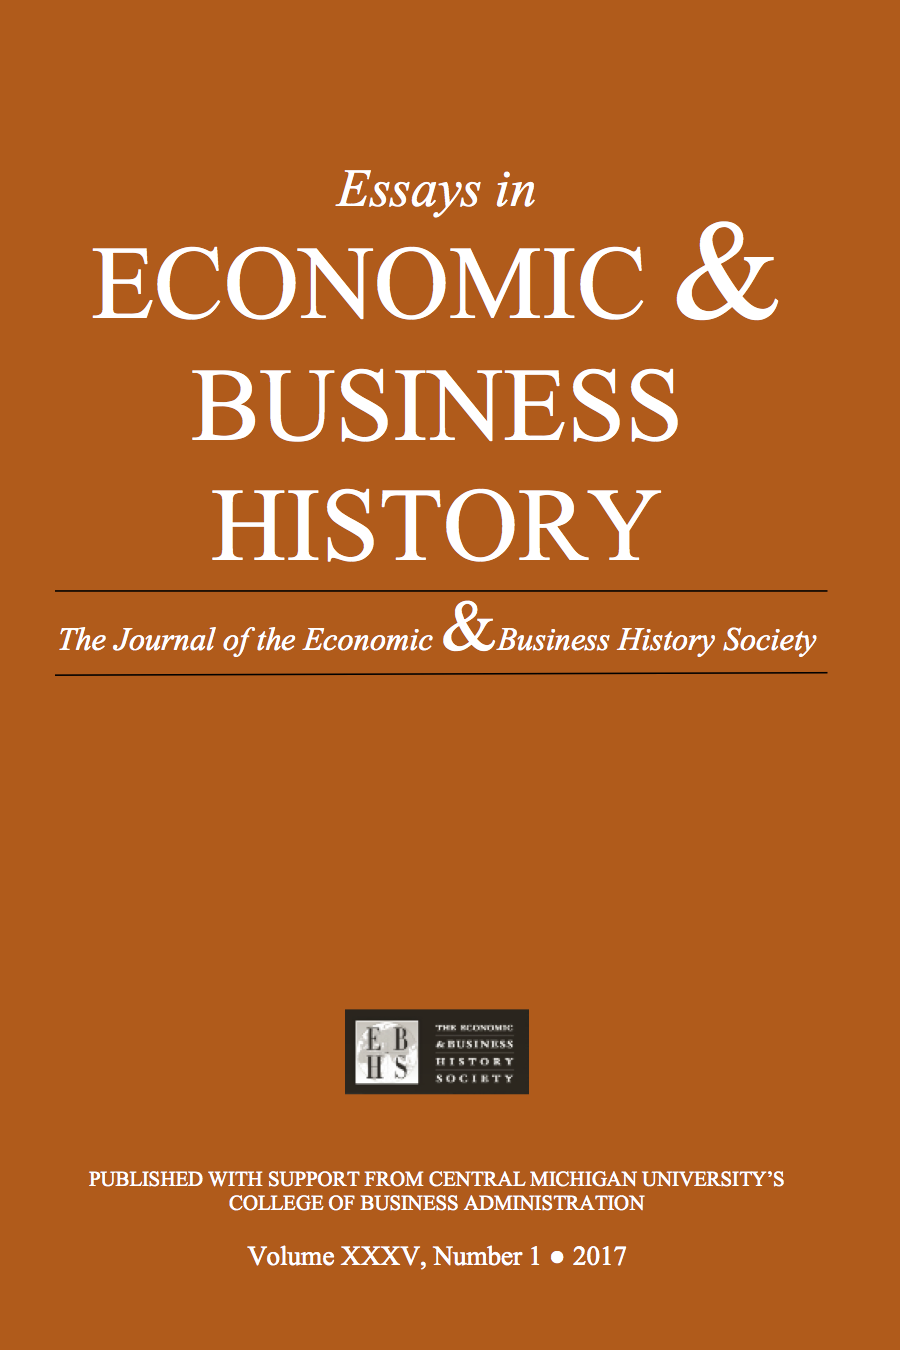 Essays in Economic & Business History 2017 (1)